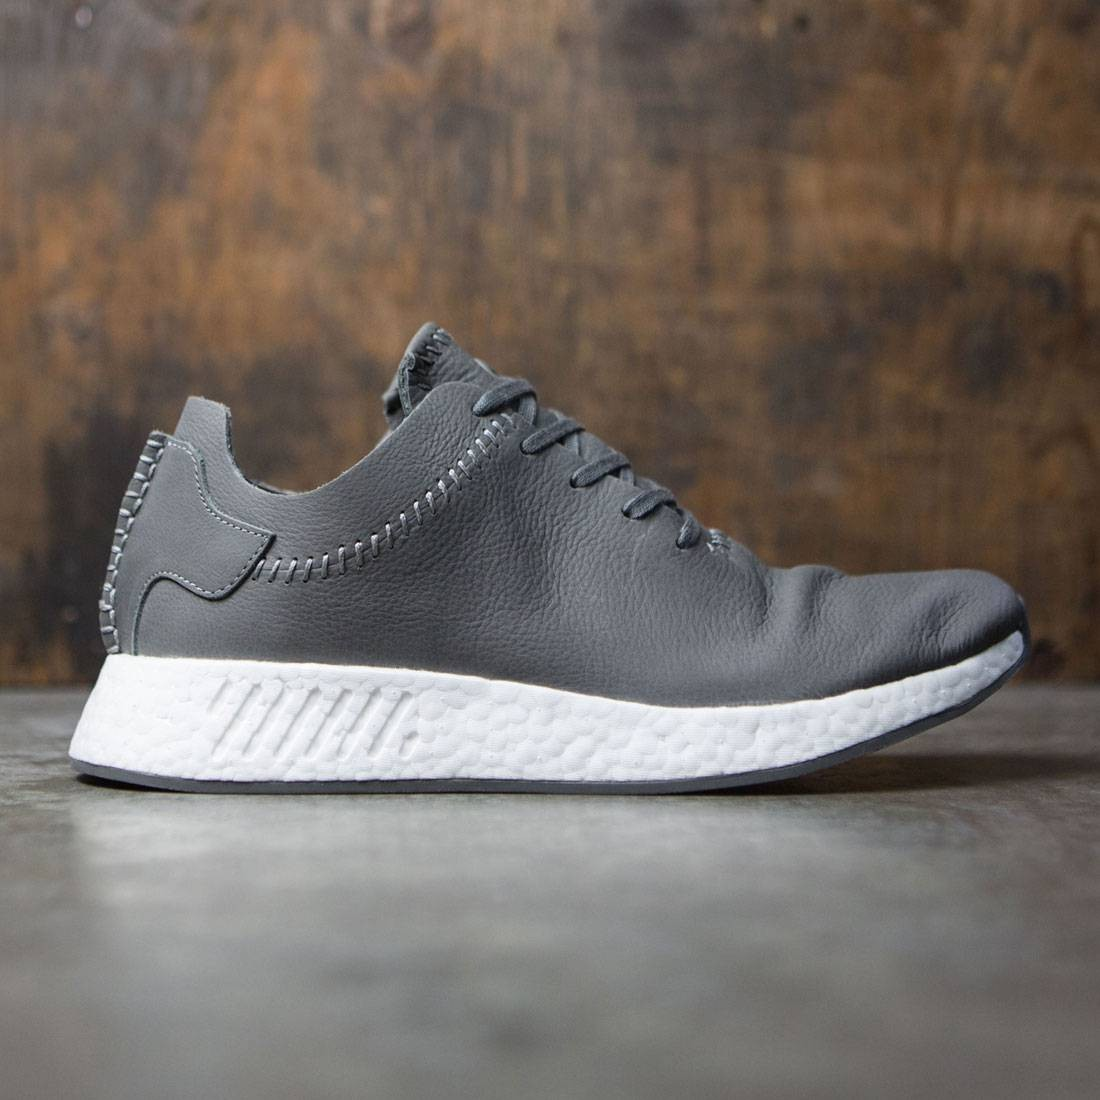 Horns Men NMD R2 Leather gray ash off white